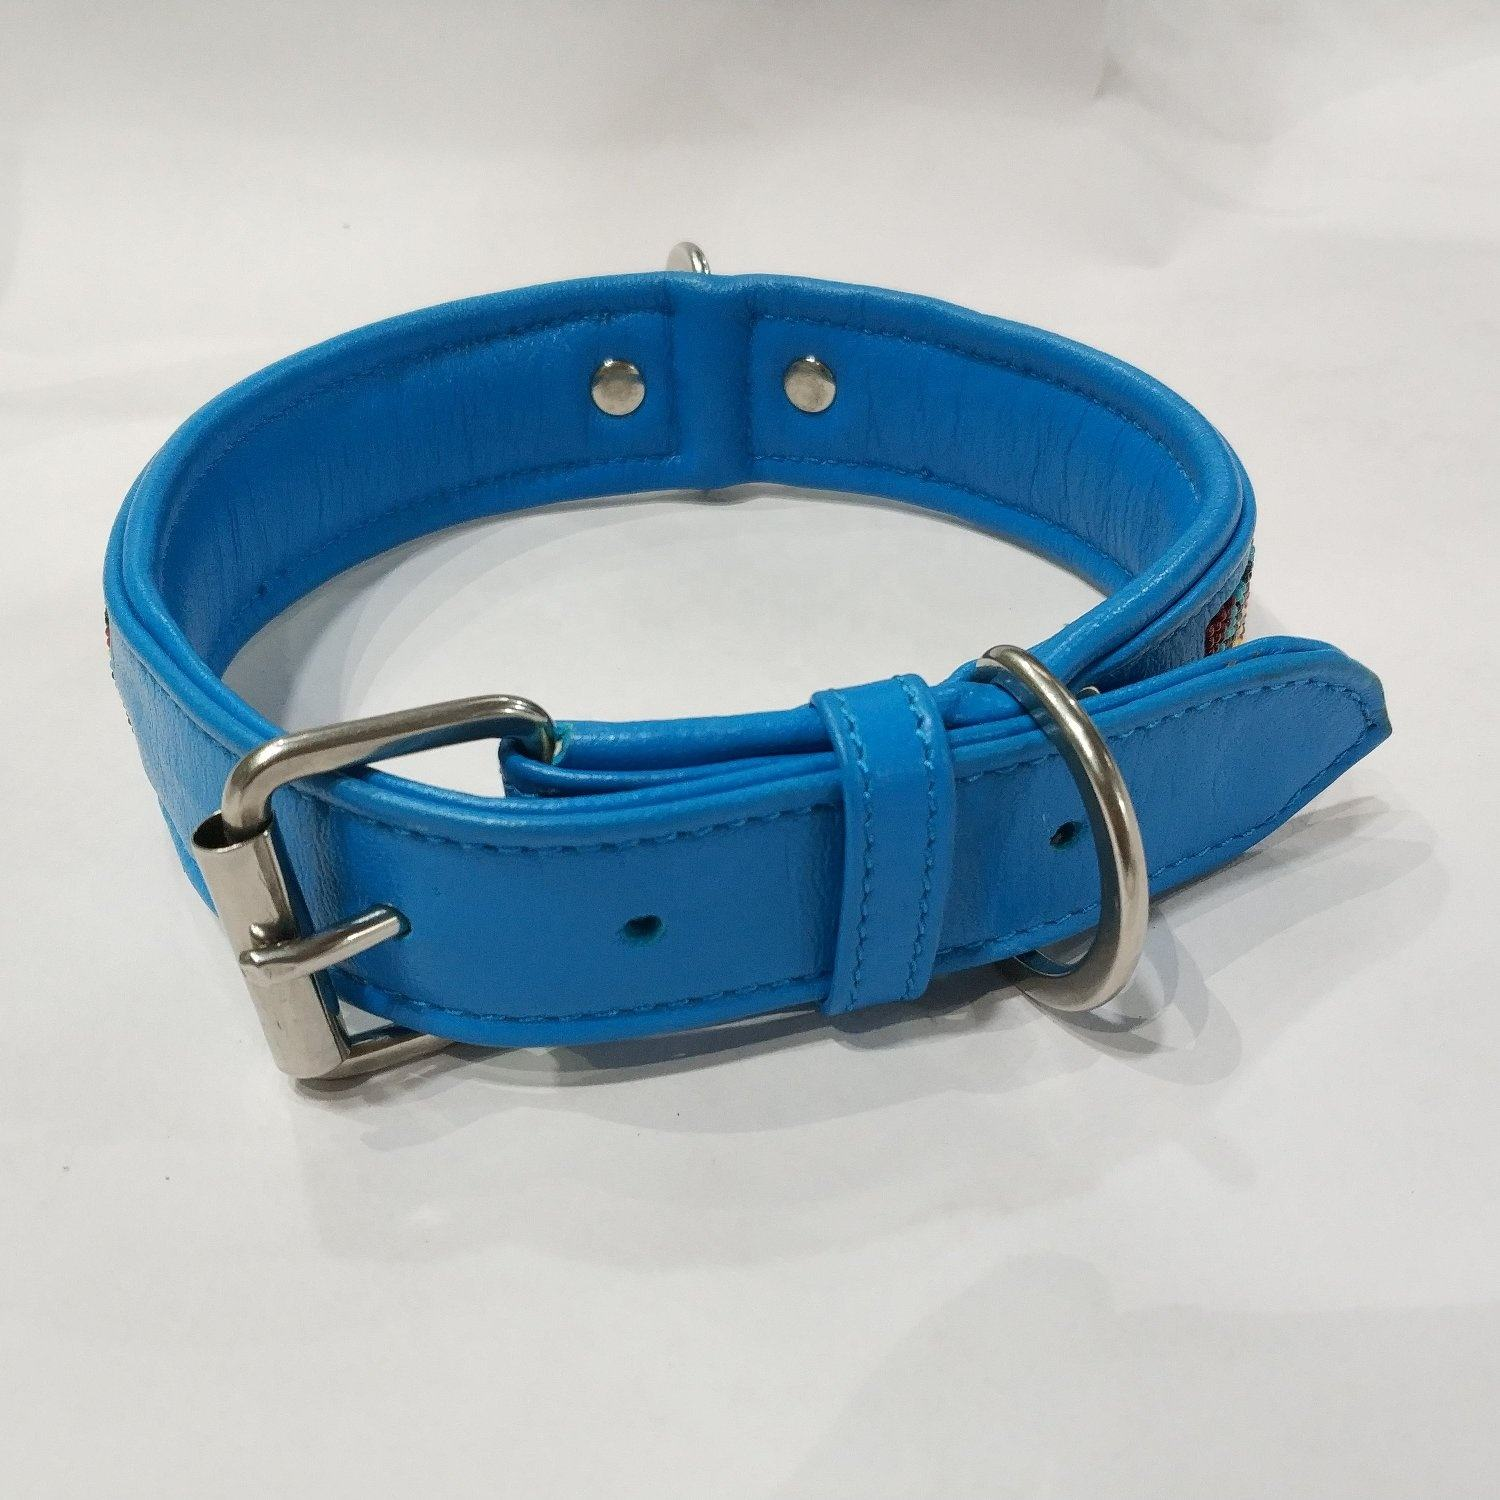 Turquoise blue padded soft leather with solid brass buckle moghani bead collar for dog and cat.